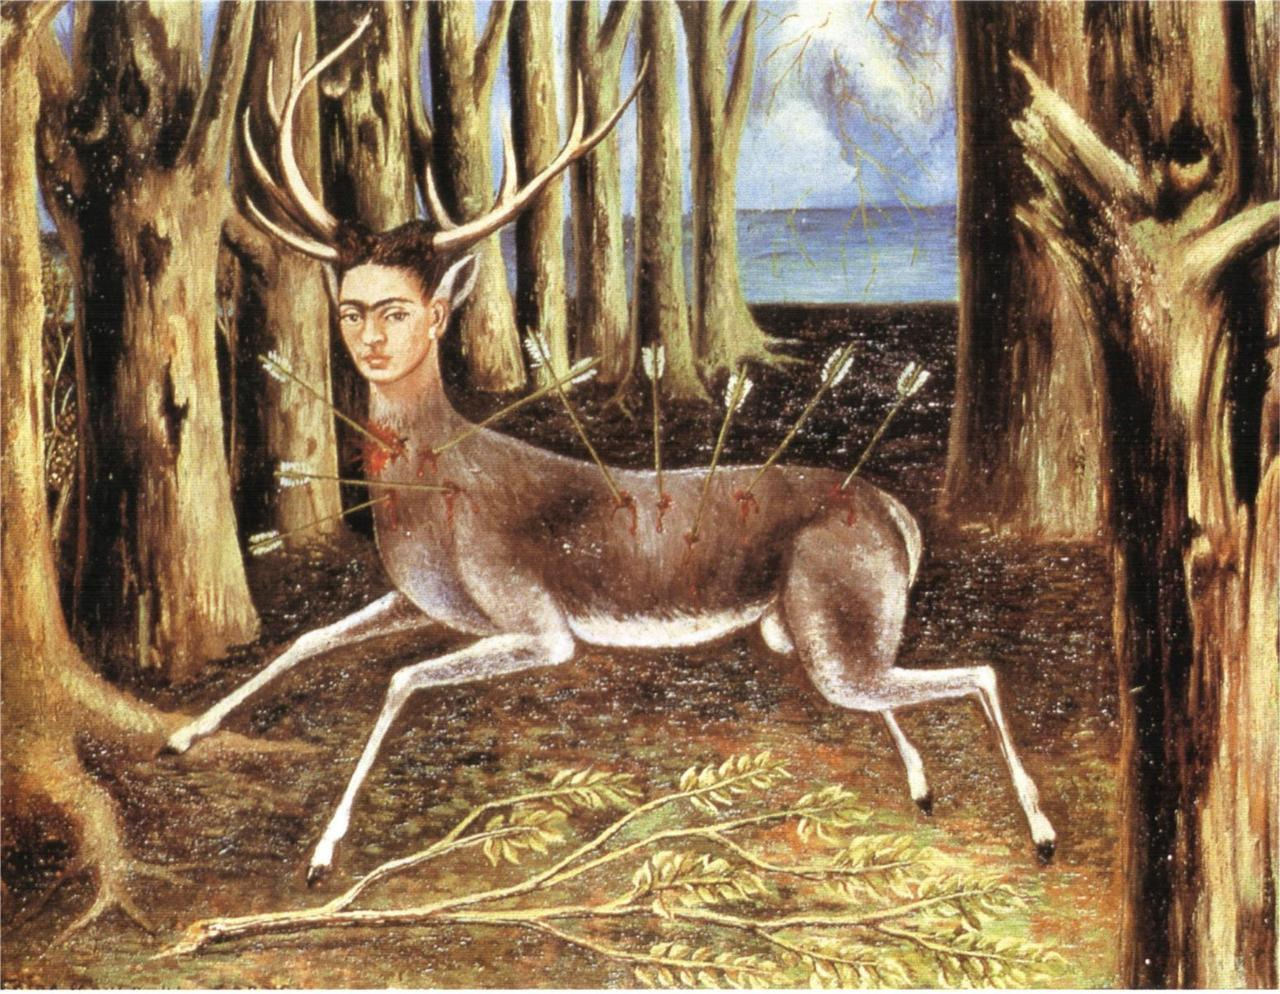 The Wounded Deer (1946) by Frida Kahlo